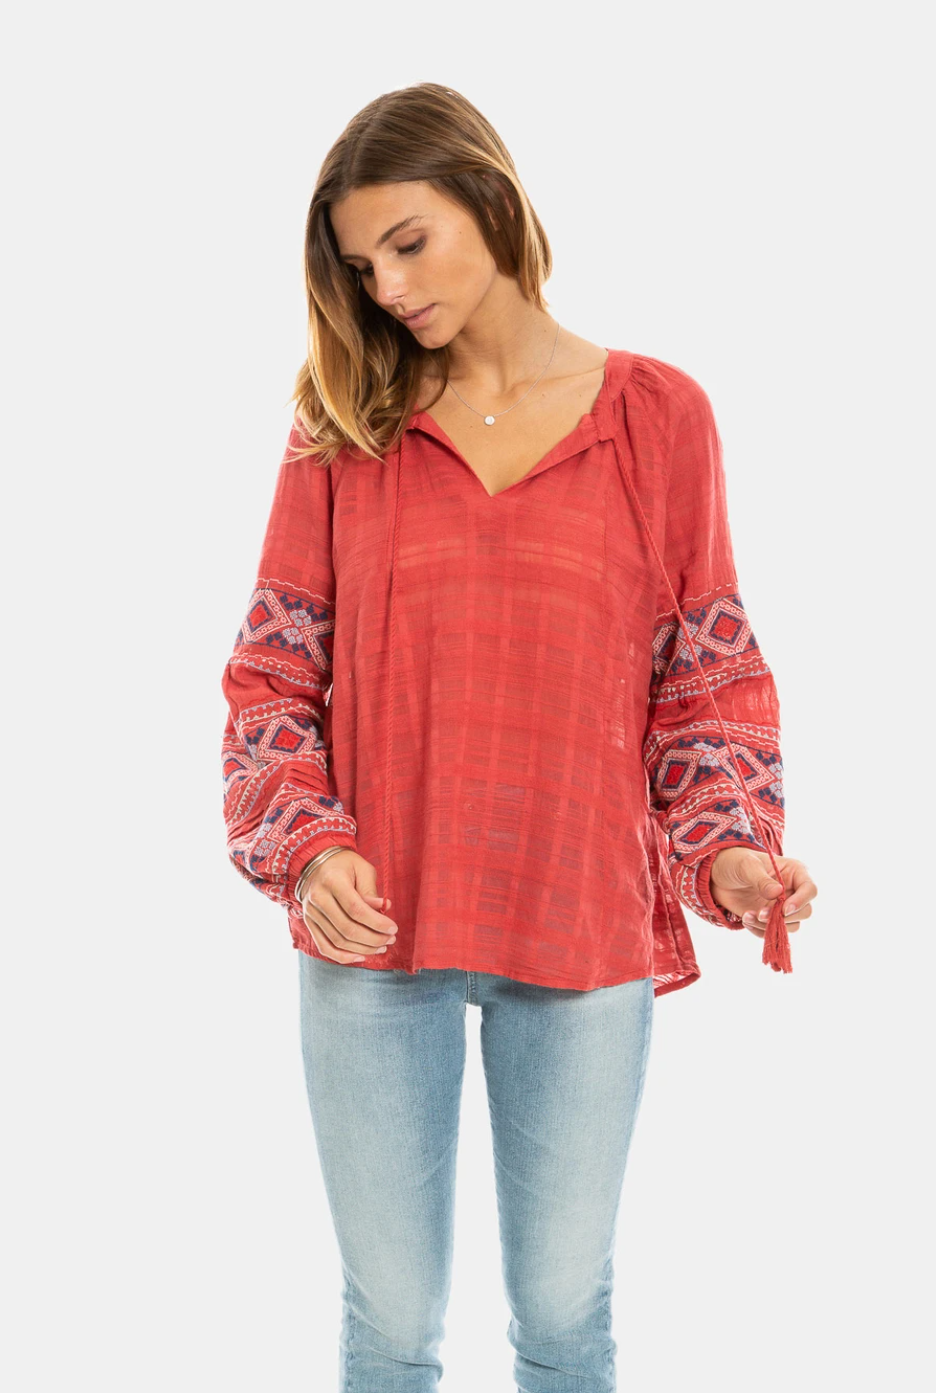 Dylan Tala Embroidered Red Shirt